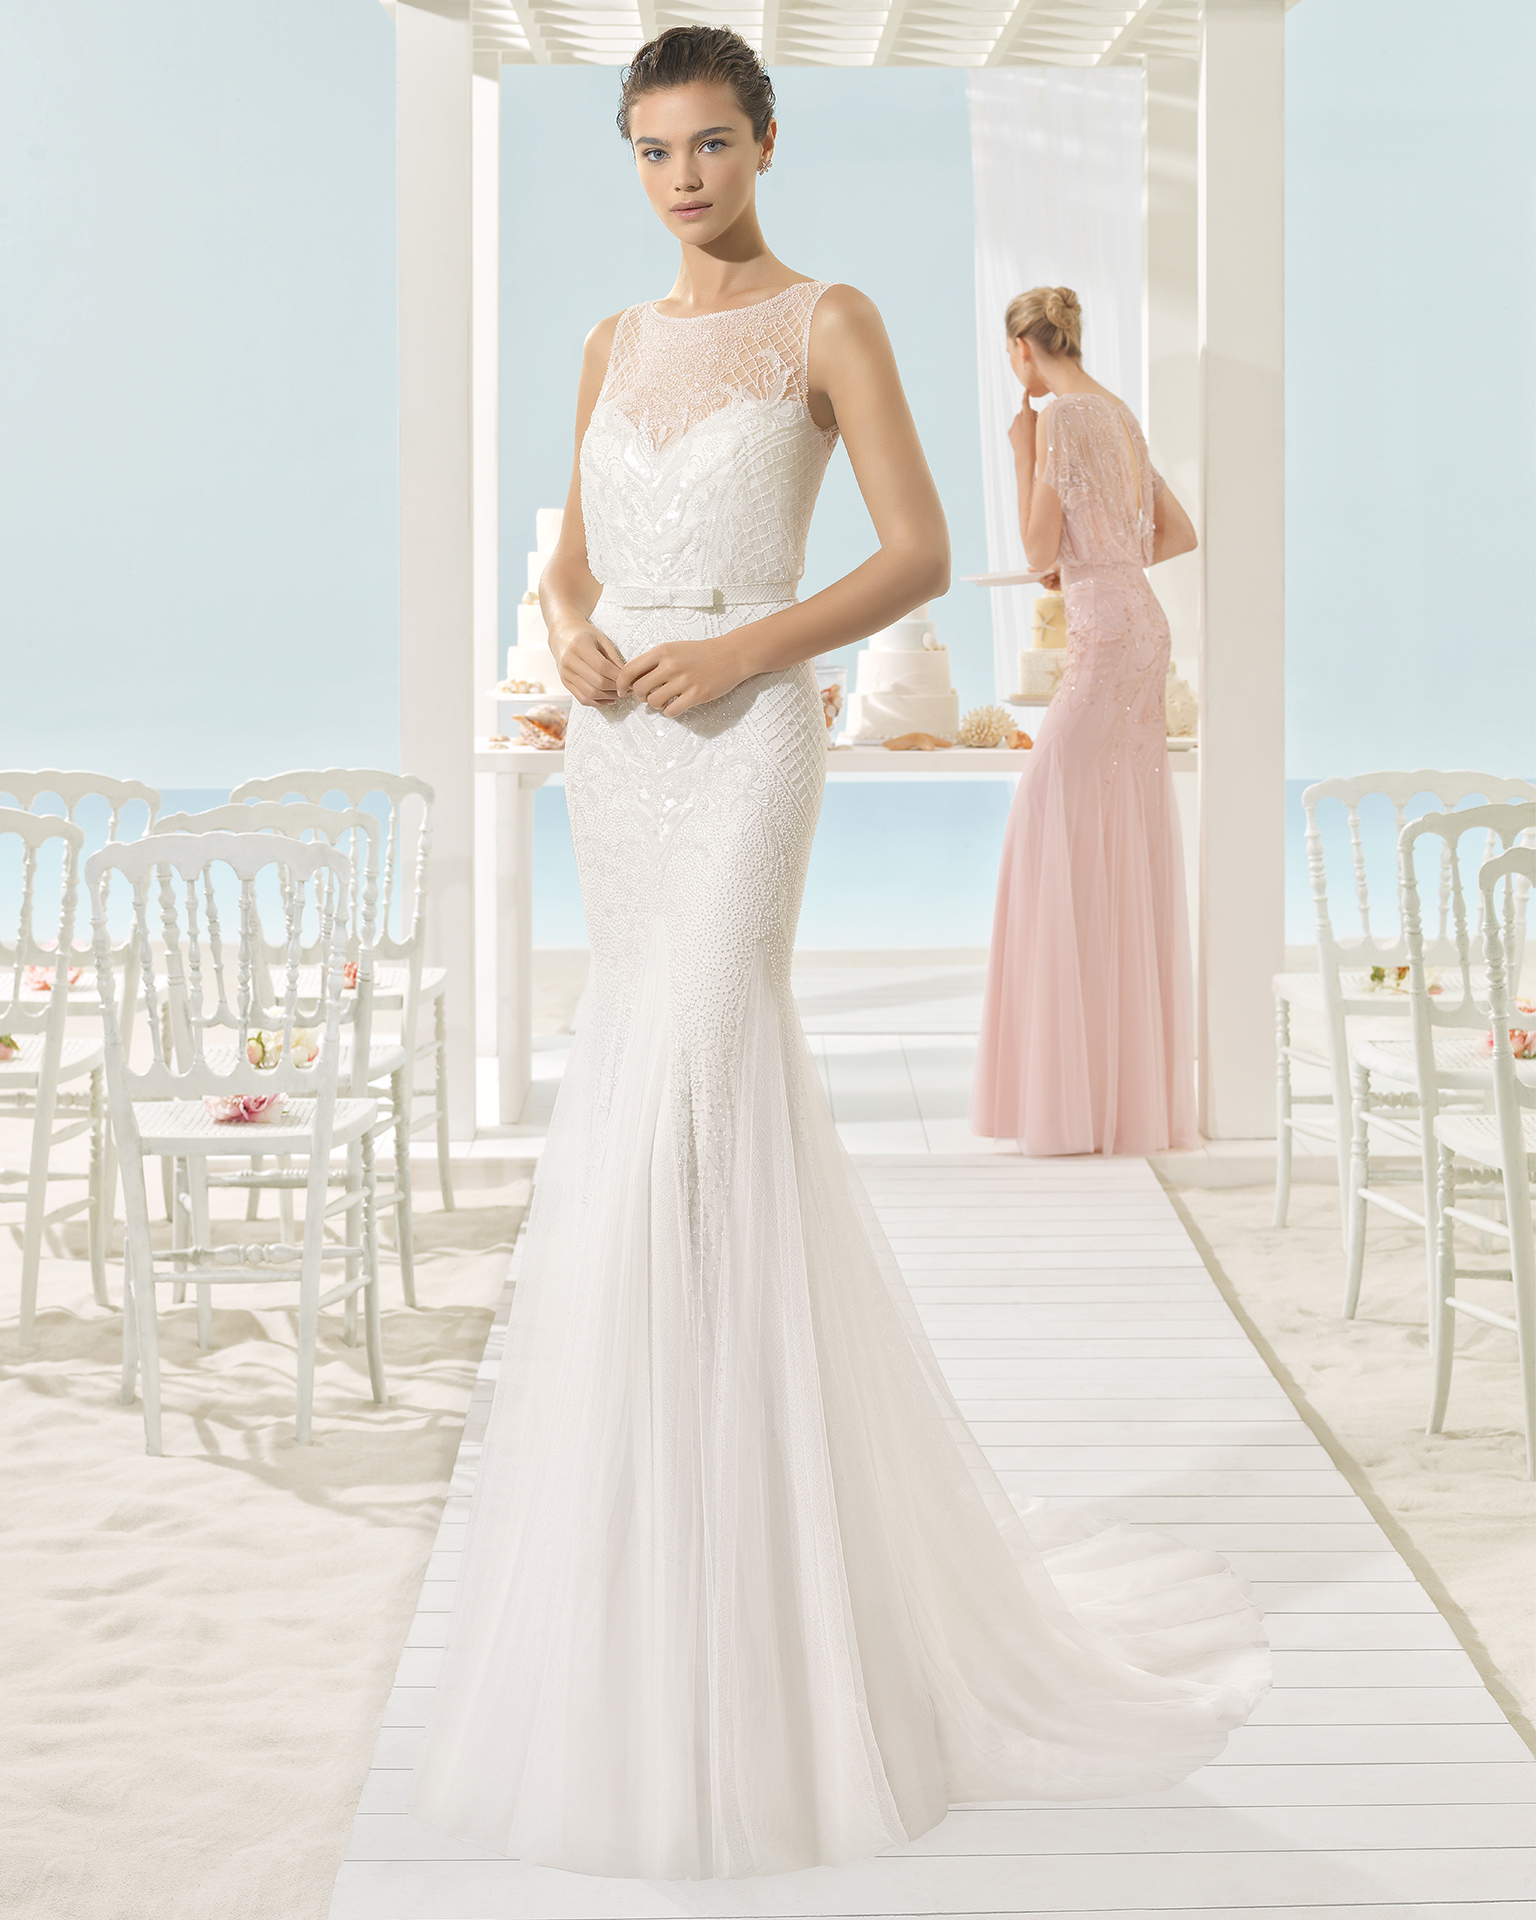 mira couture aire barcelona xana beach bridal wedding dress gown chicago front